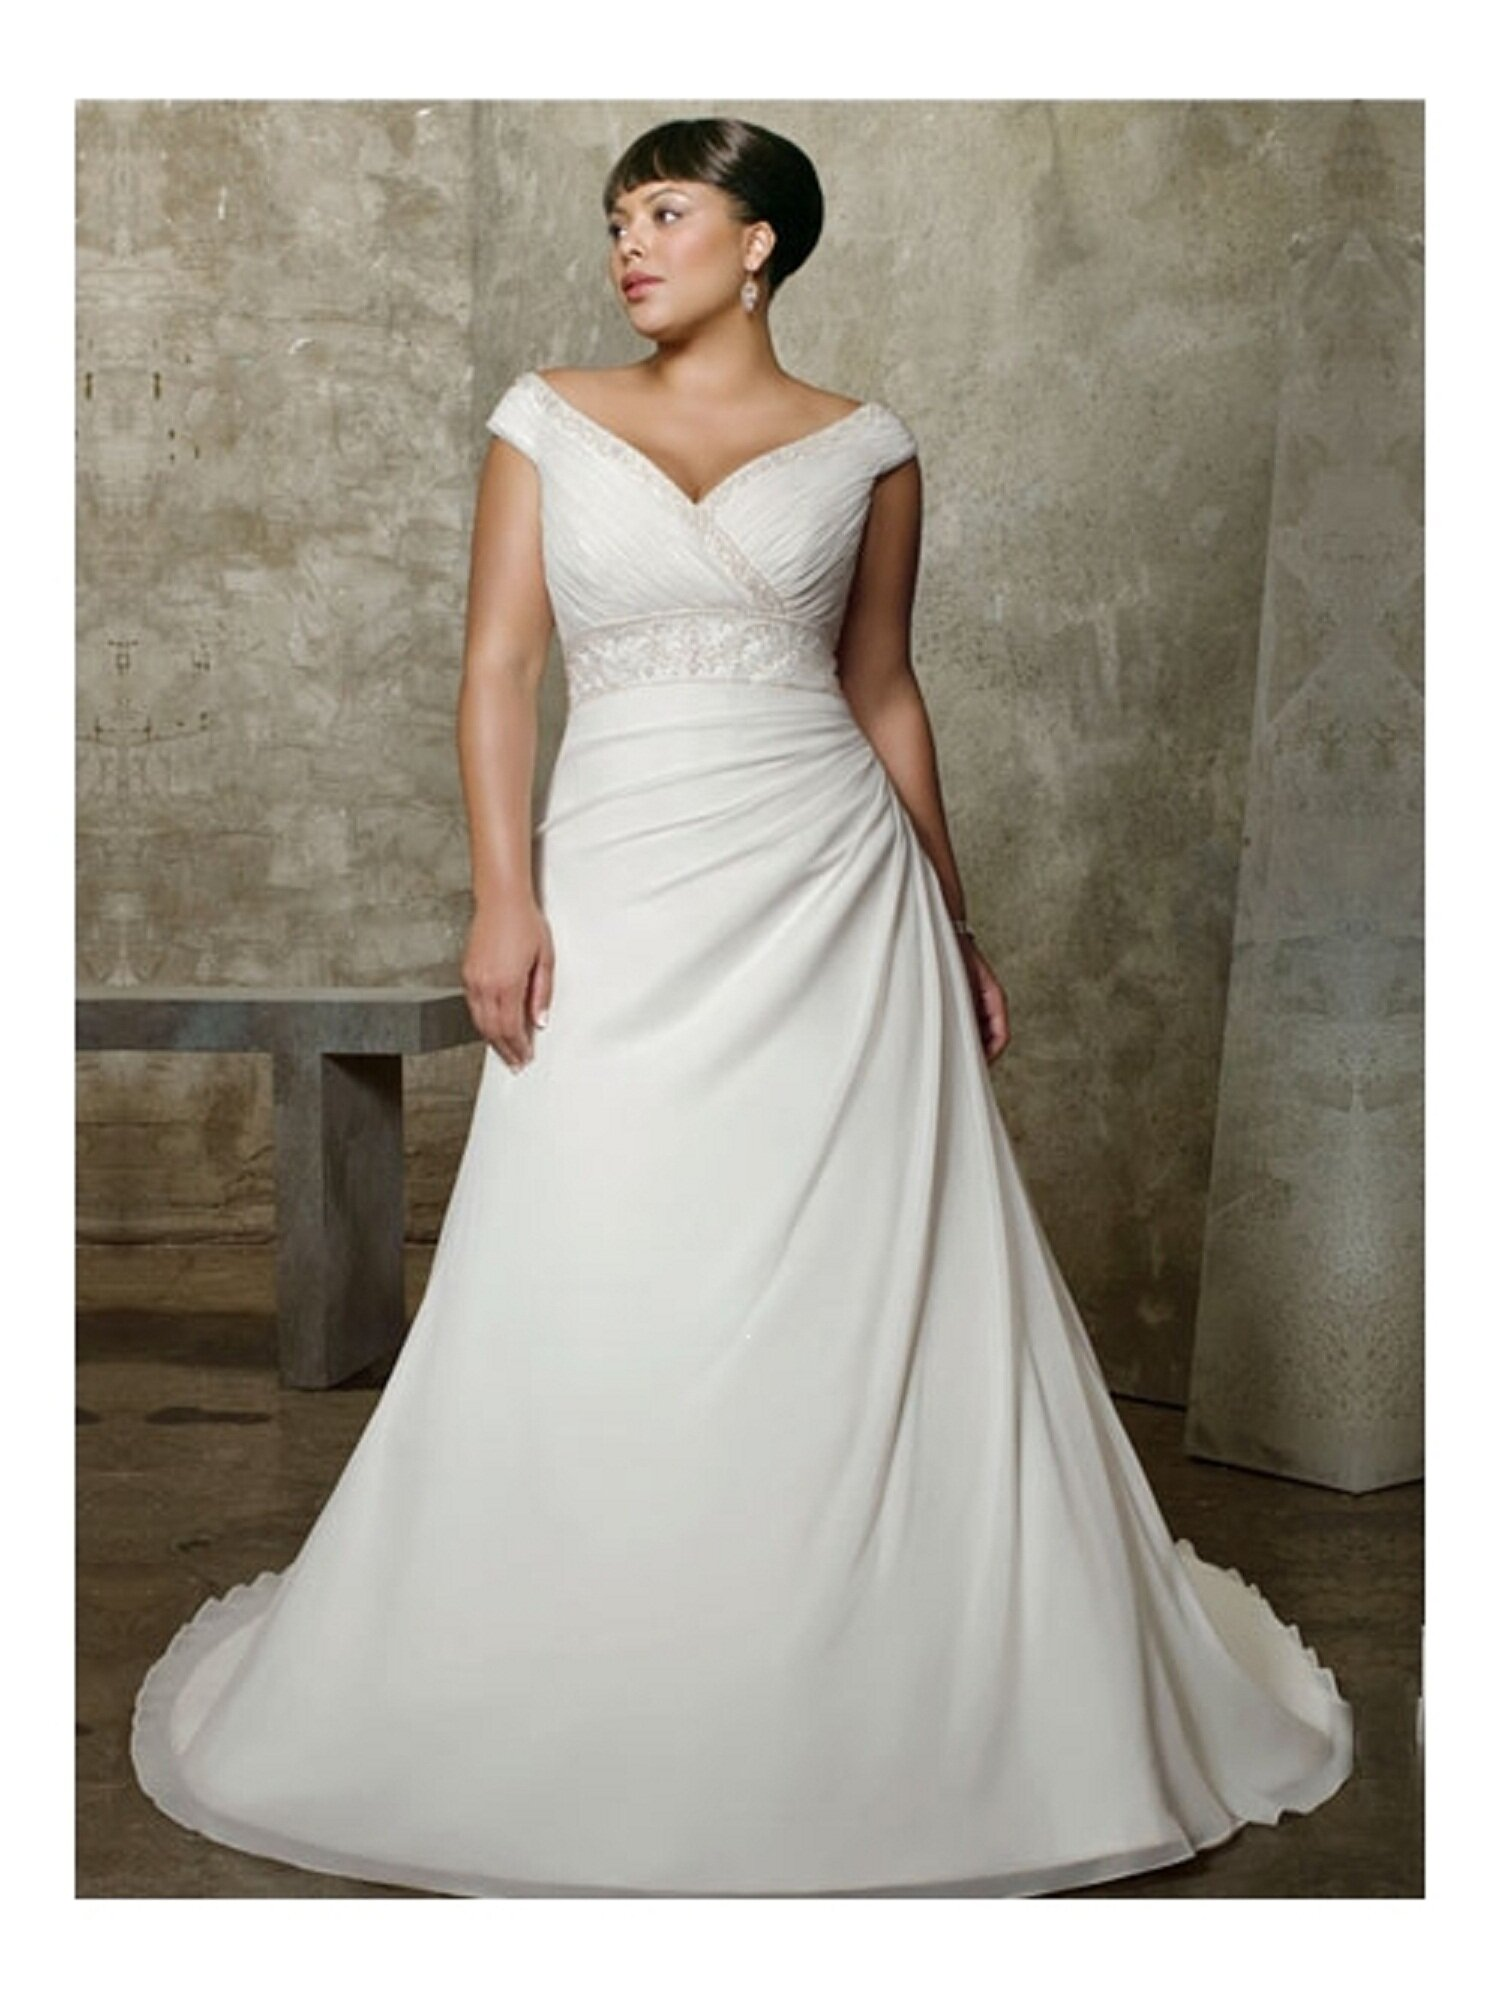 Wedding dresses for big girls: Pictures ideas, Guide to buying ...